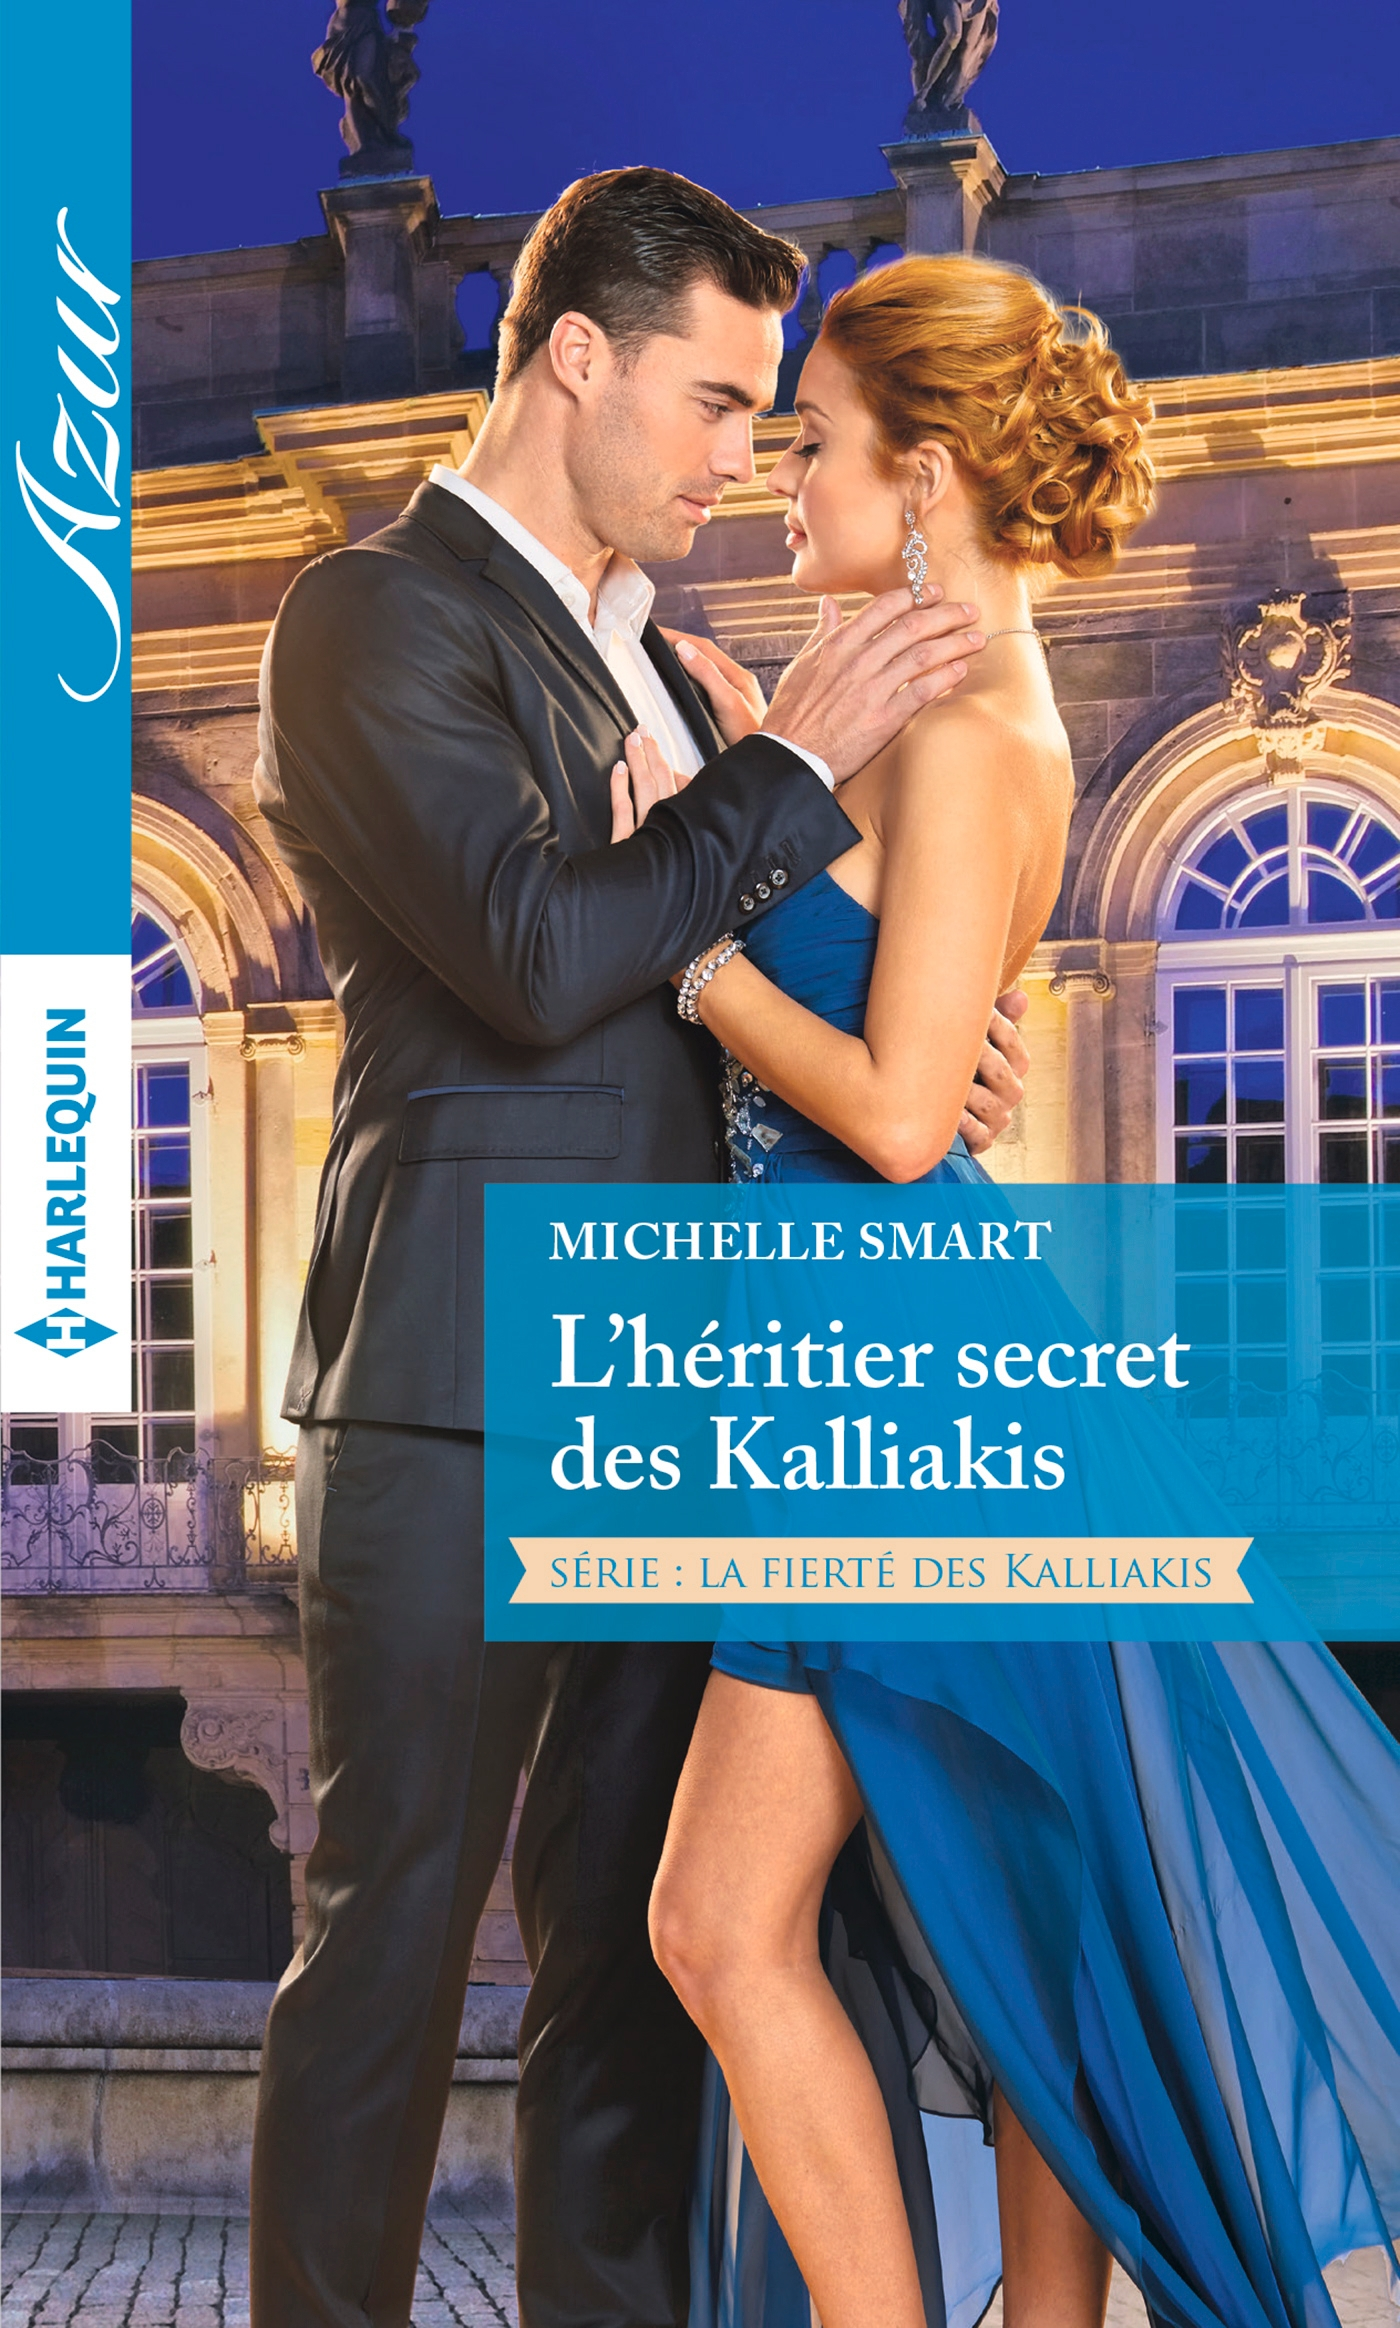 L'héritier secret des Kalliakis